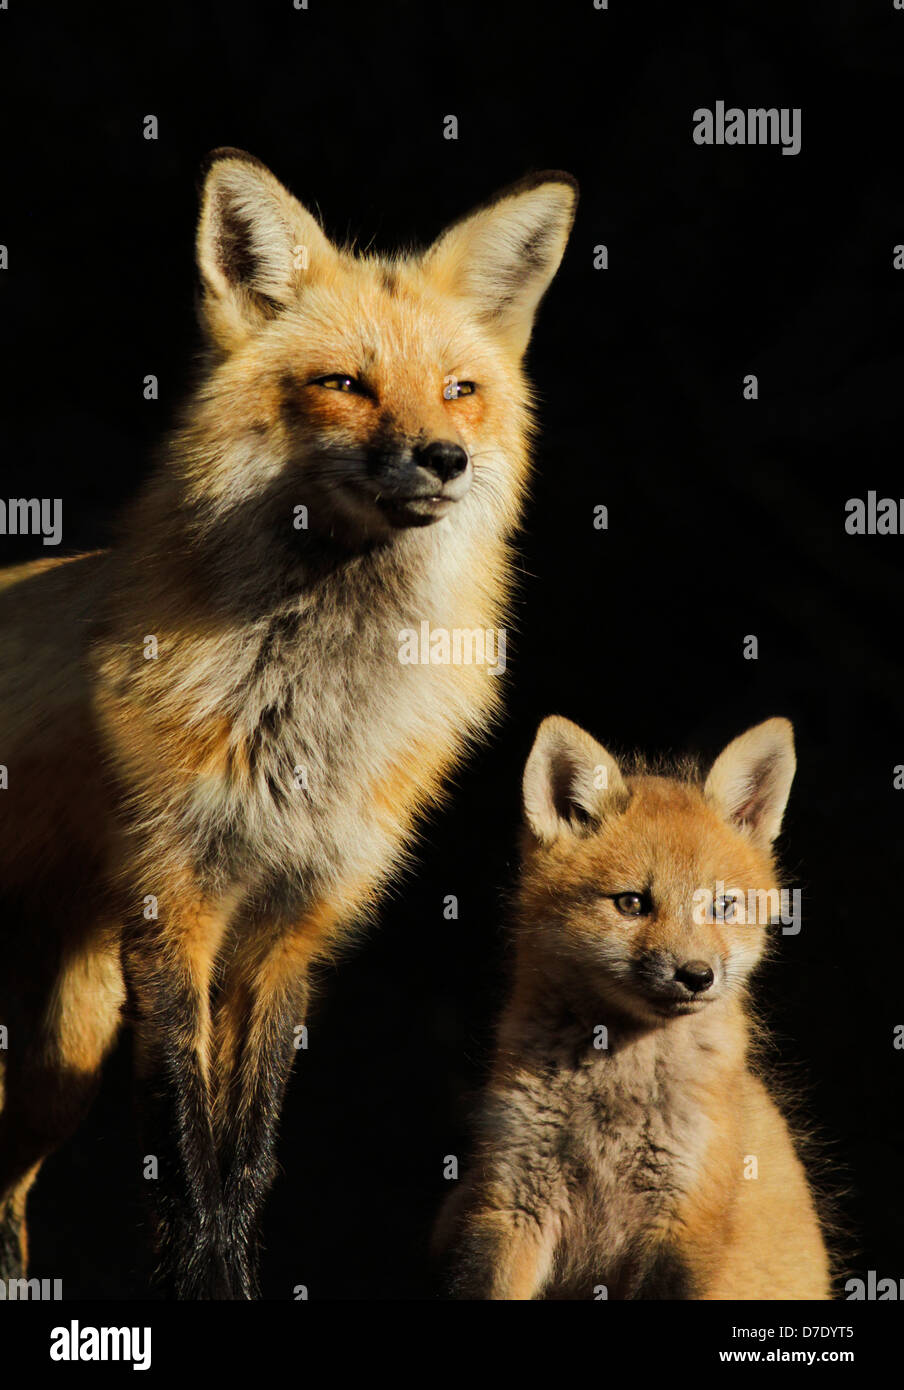 Family portrait. Female red fox with two month pup isolated on black background. - Stock Image